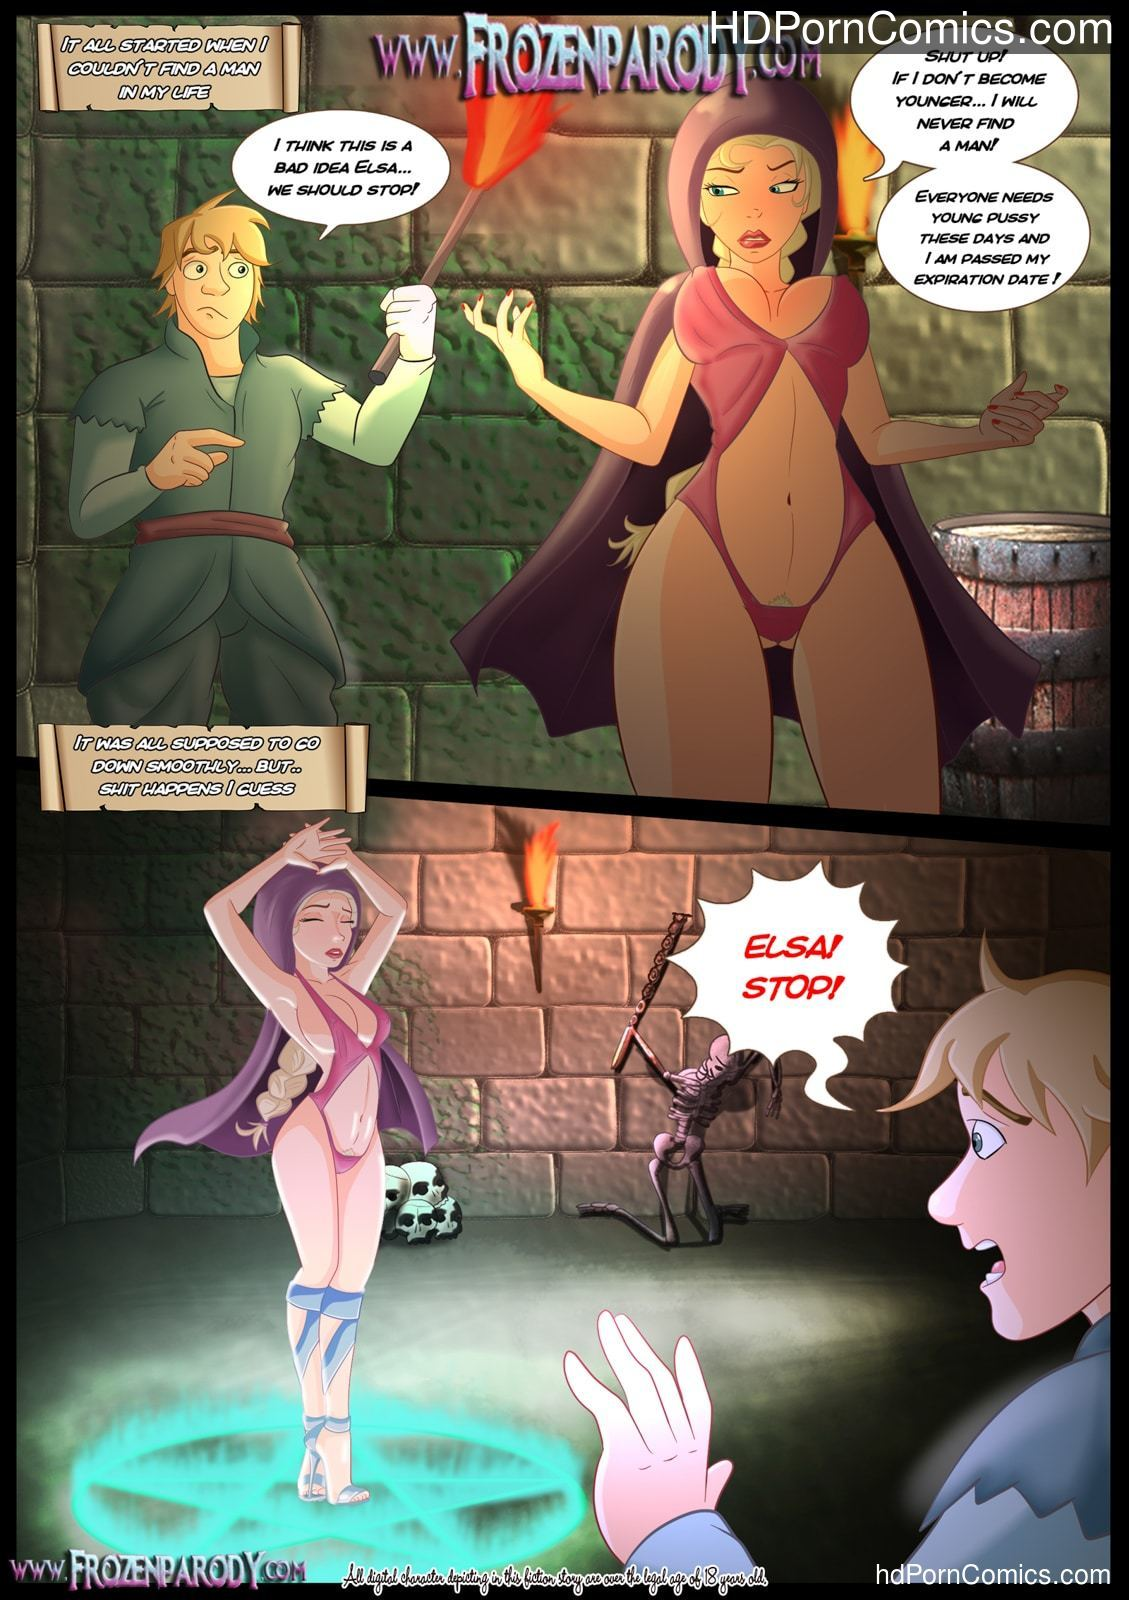 Porn parody cartoon Frozen Parody – 11 free Cartoon Porn Comic